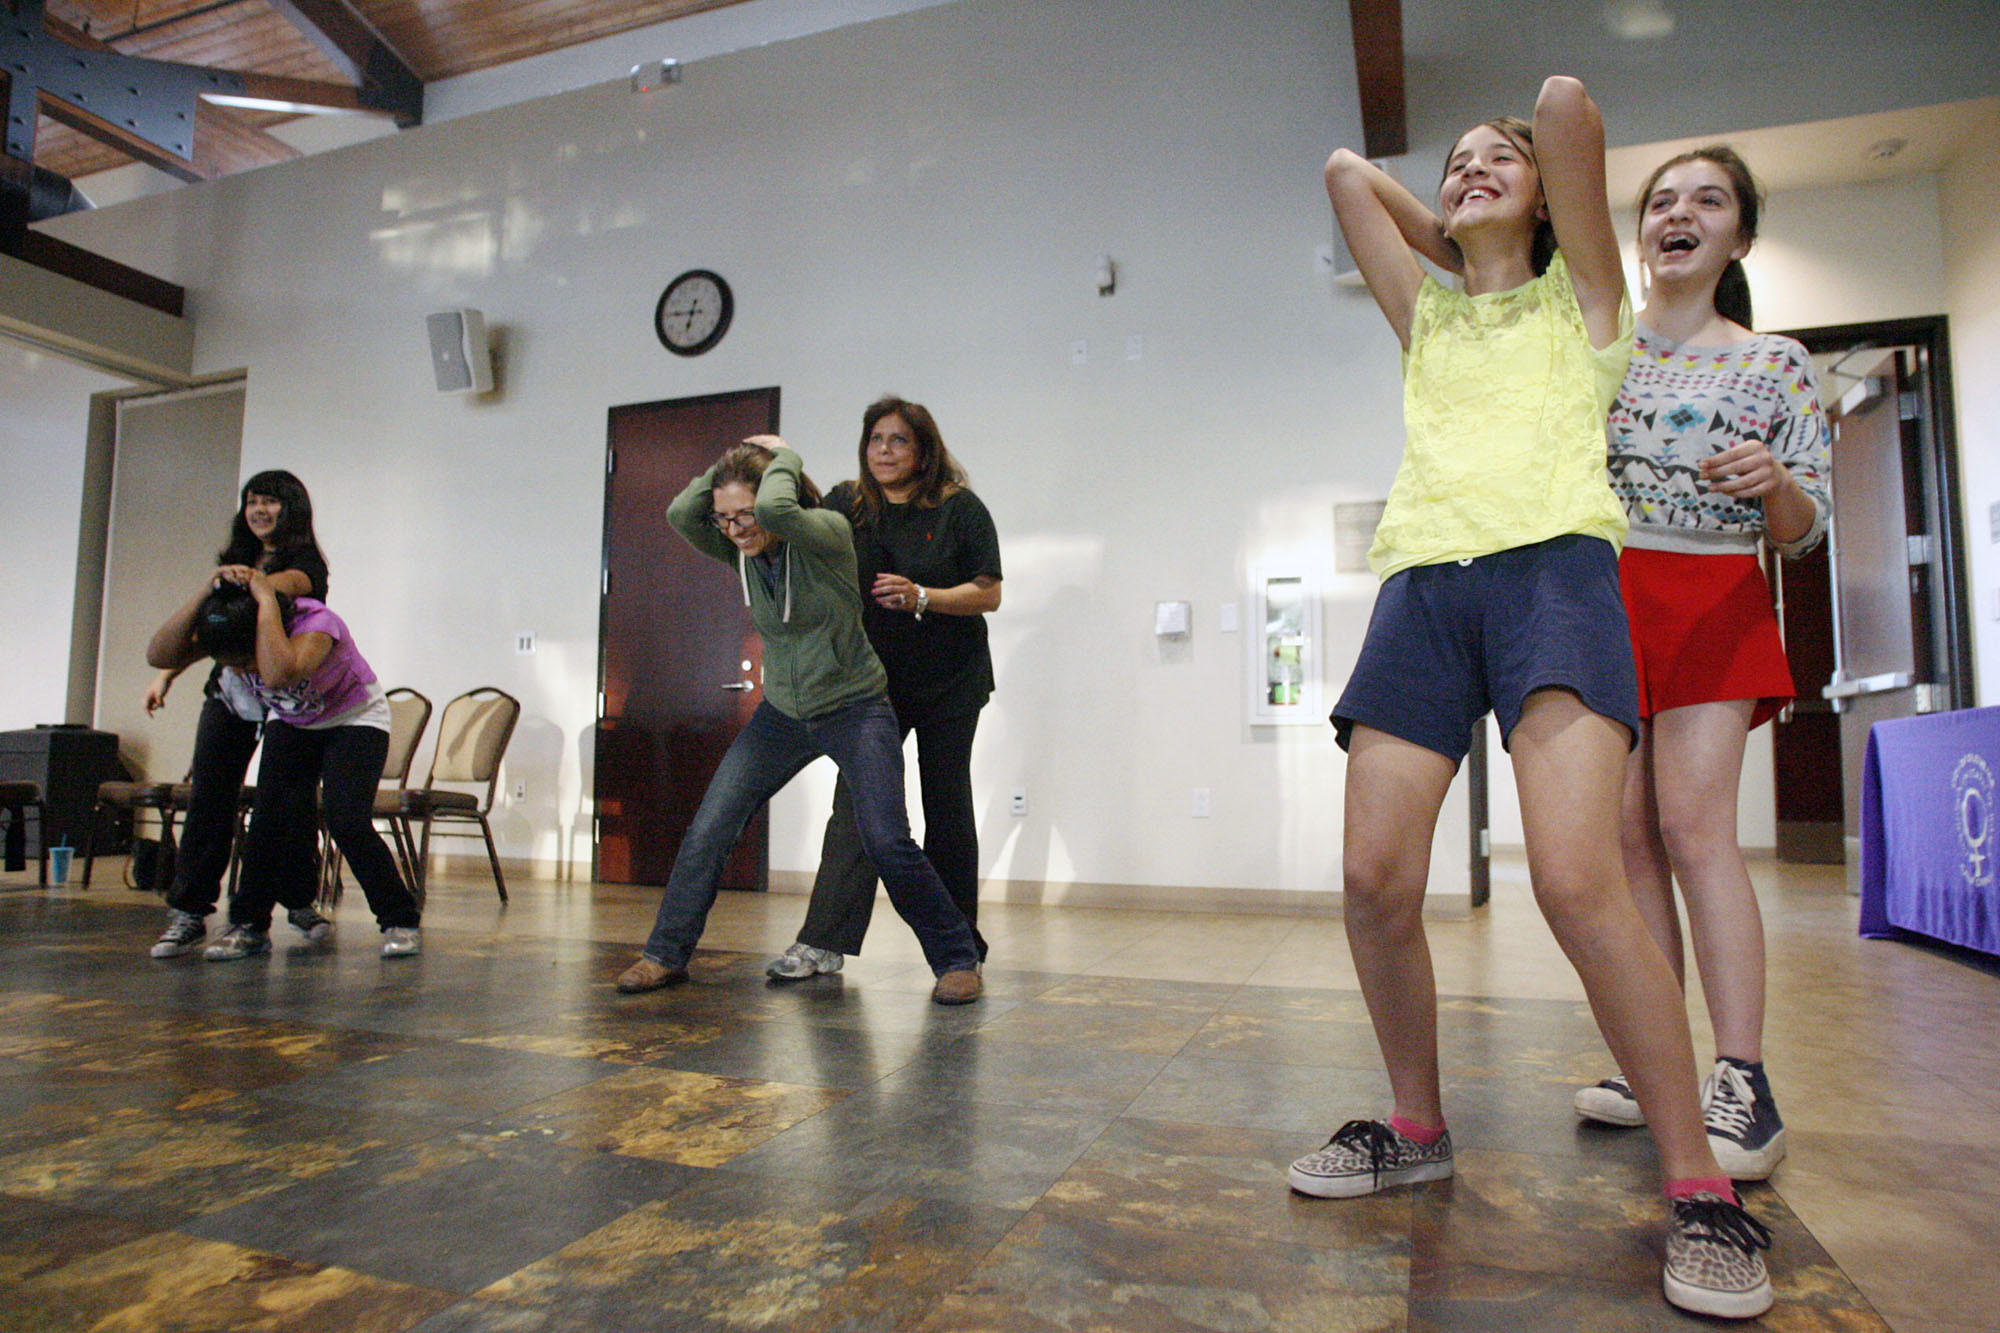 For years, Glendale's Commission on the Status of Women has hosted self-defense classes in April on city property for women and girls in honor of Sexual Assault Awareness Month, but this year, the National Coalition of Men has written to the city requesting males be permitted to attend the class, too. Pictured in last year's class are Alexandra Melkonians, 12, from left, Candice LeFranc, 11, Cassandra Pruett, Candice's mother, Ligia, Maritza Gonzalez, 12, and Dariana Peraza, 13, at the Adult Recreation Center in Glendale.